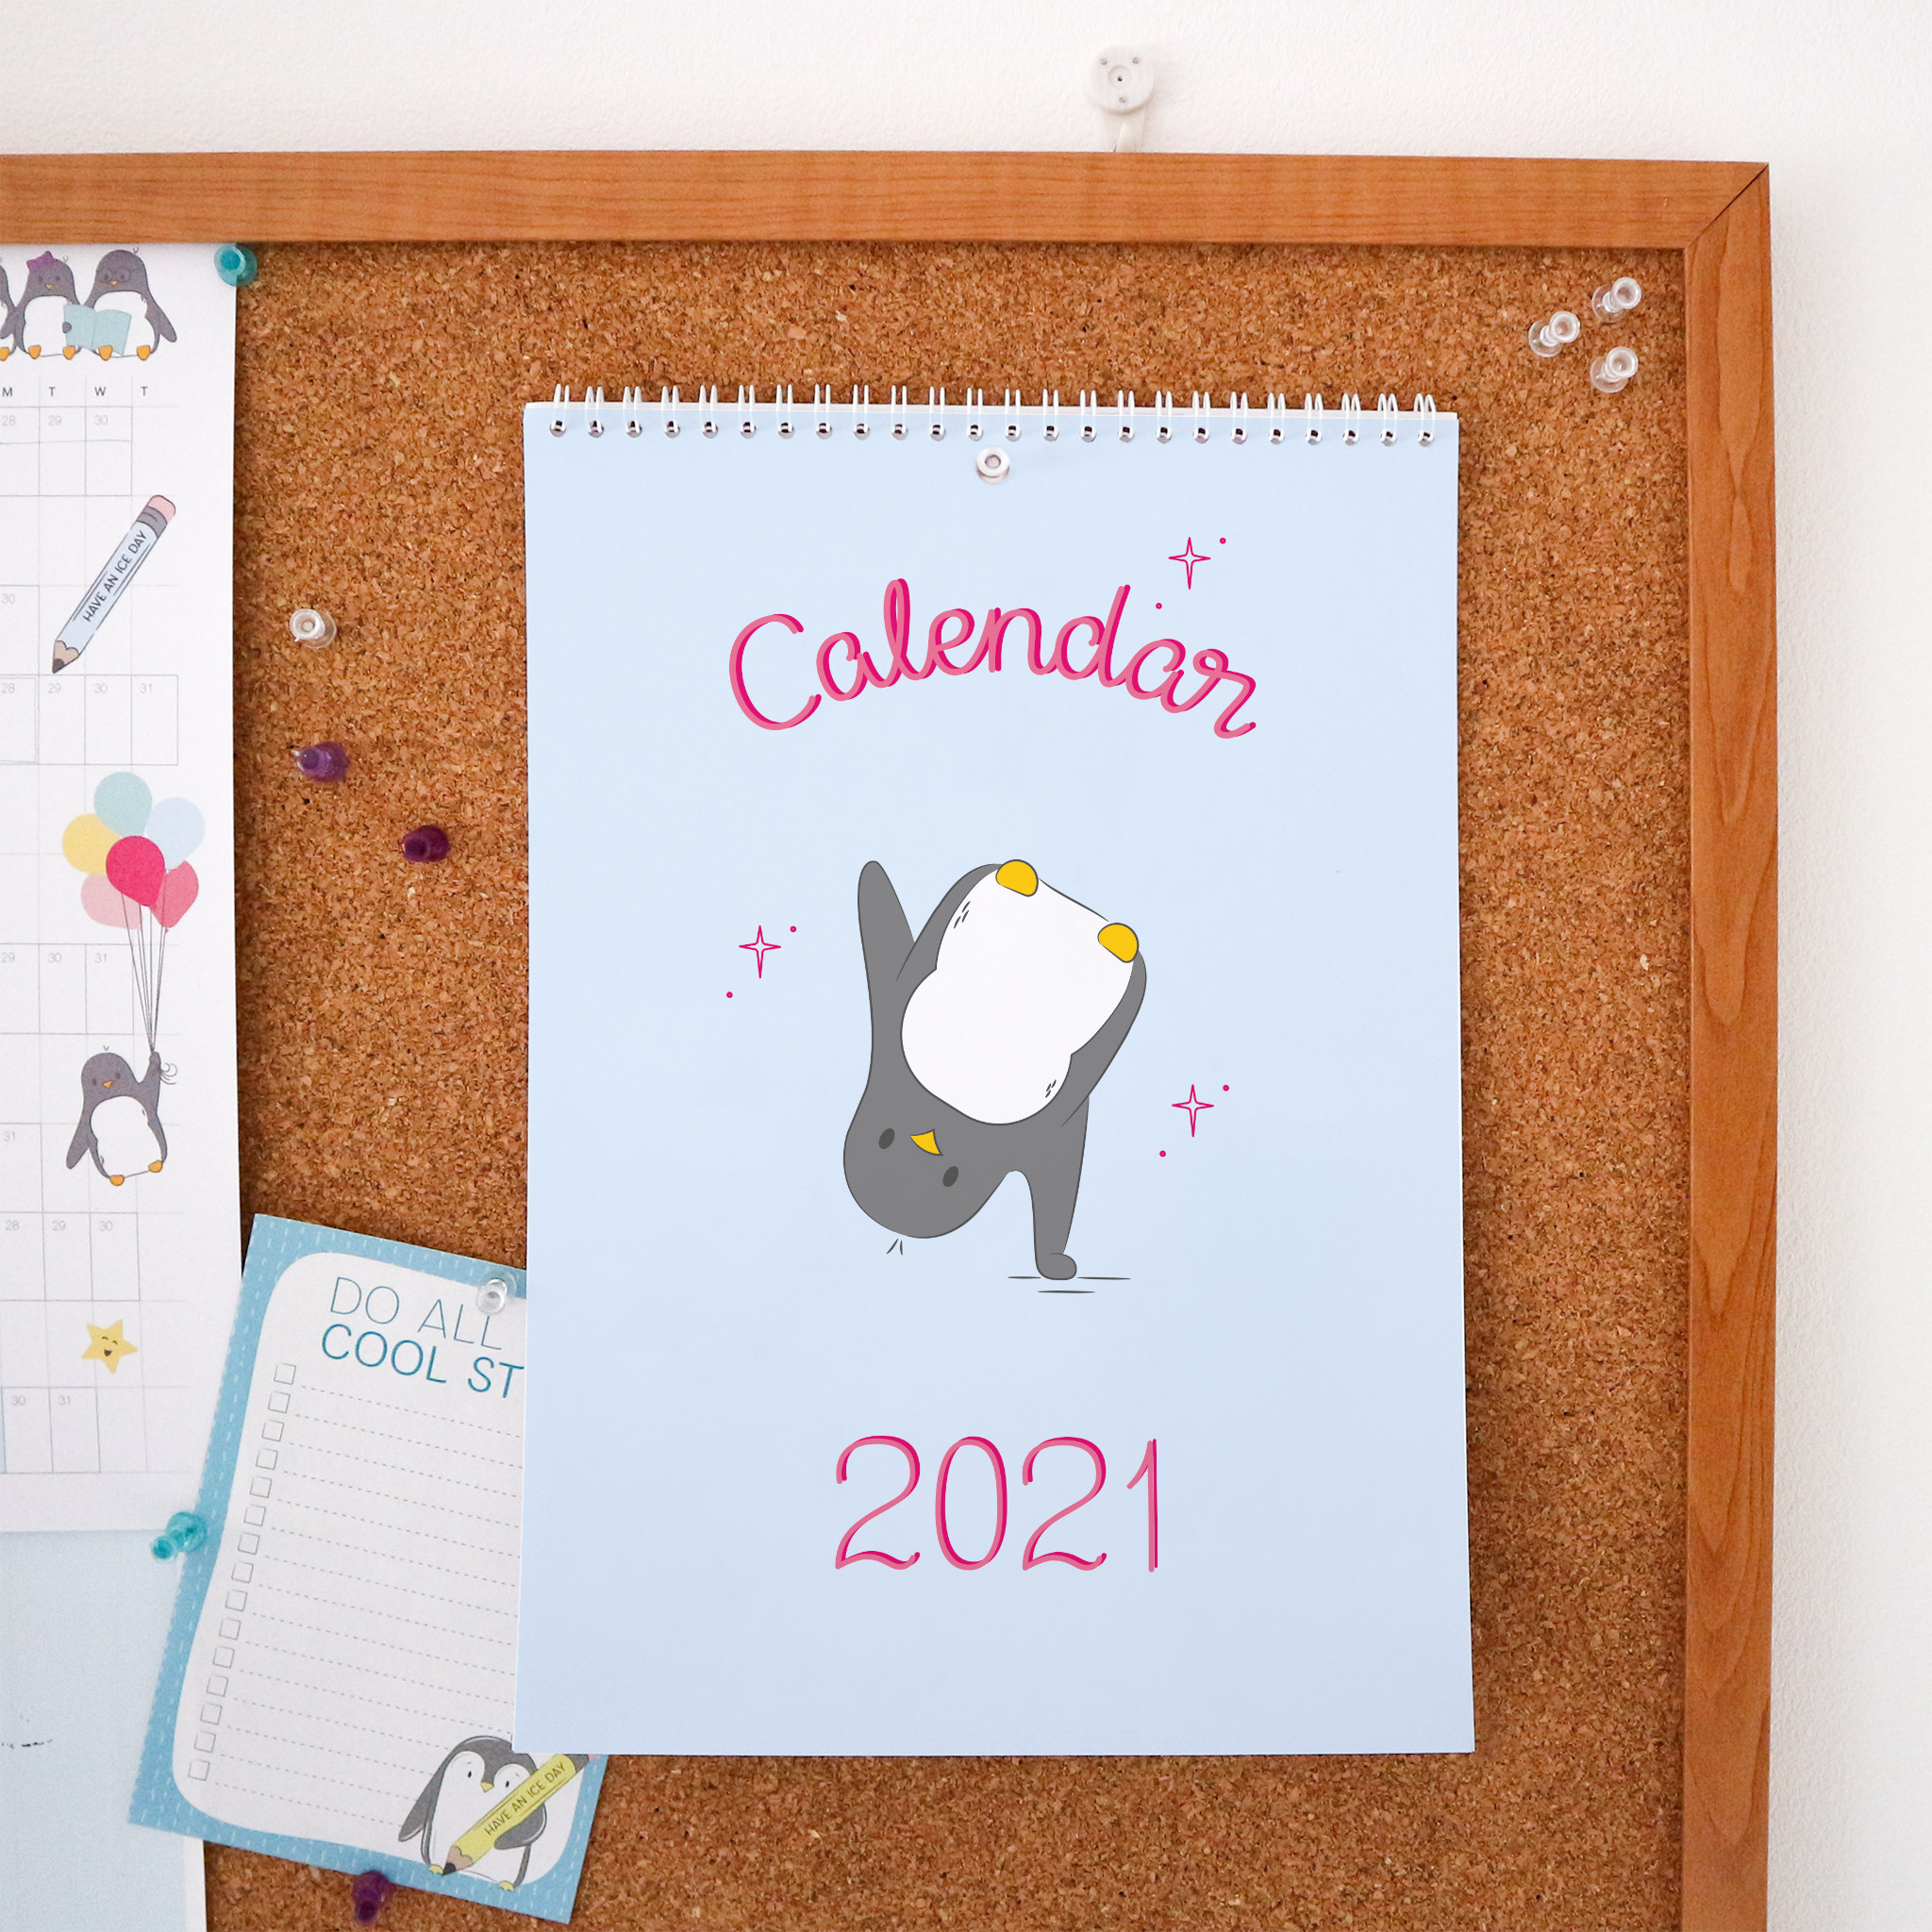 The front page of the 2021 calendar is an illustration of penguin cartwheeling, it has a pale blue background and the words calendar 2021 are hand-lettered in pink. This Calendar is wire bound A4 and is styled against a cork board background.